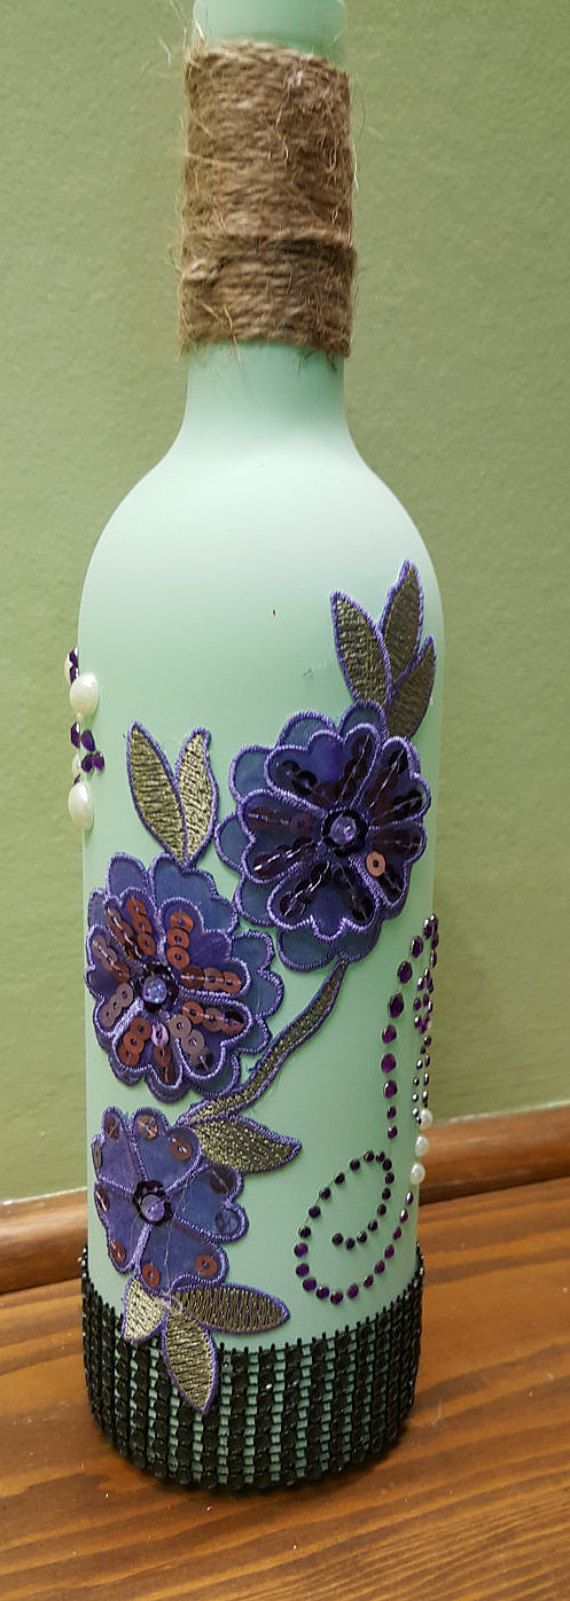 Mint green bottle decorated with black, purple & white embellishments A great gift item About 3 inches wide by 12 inches tall